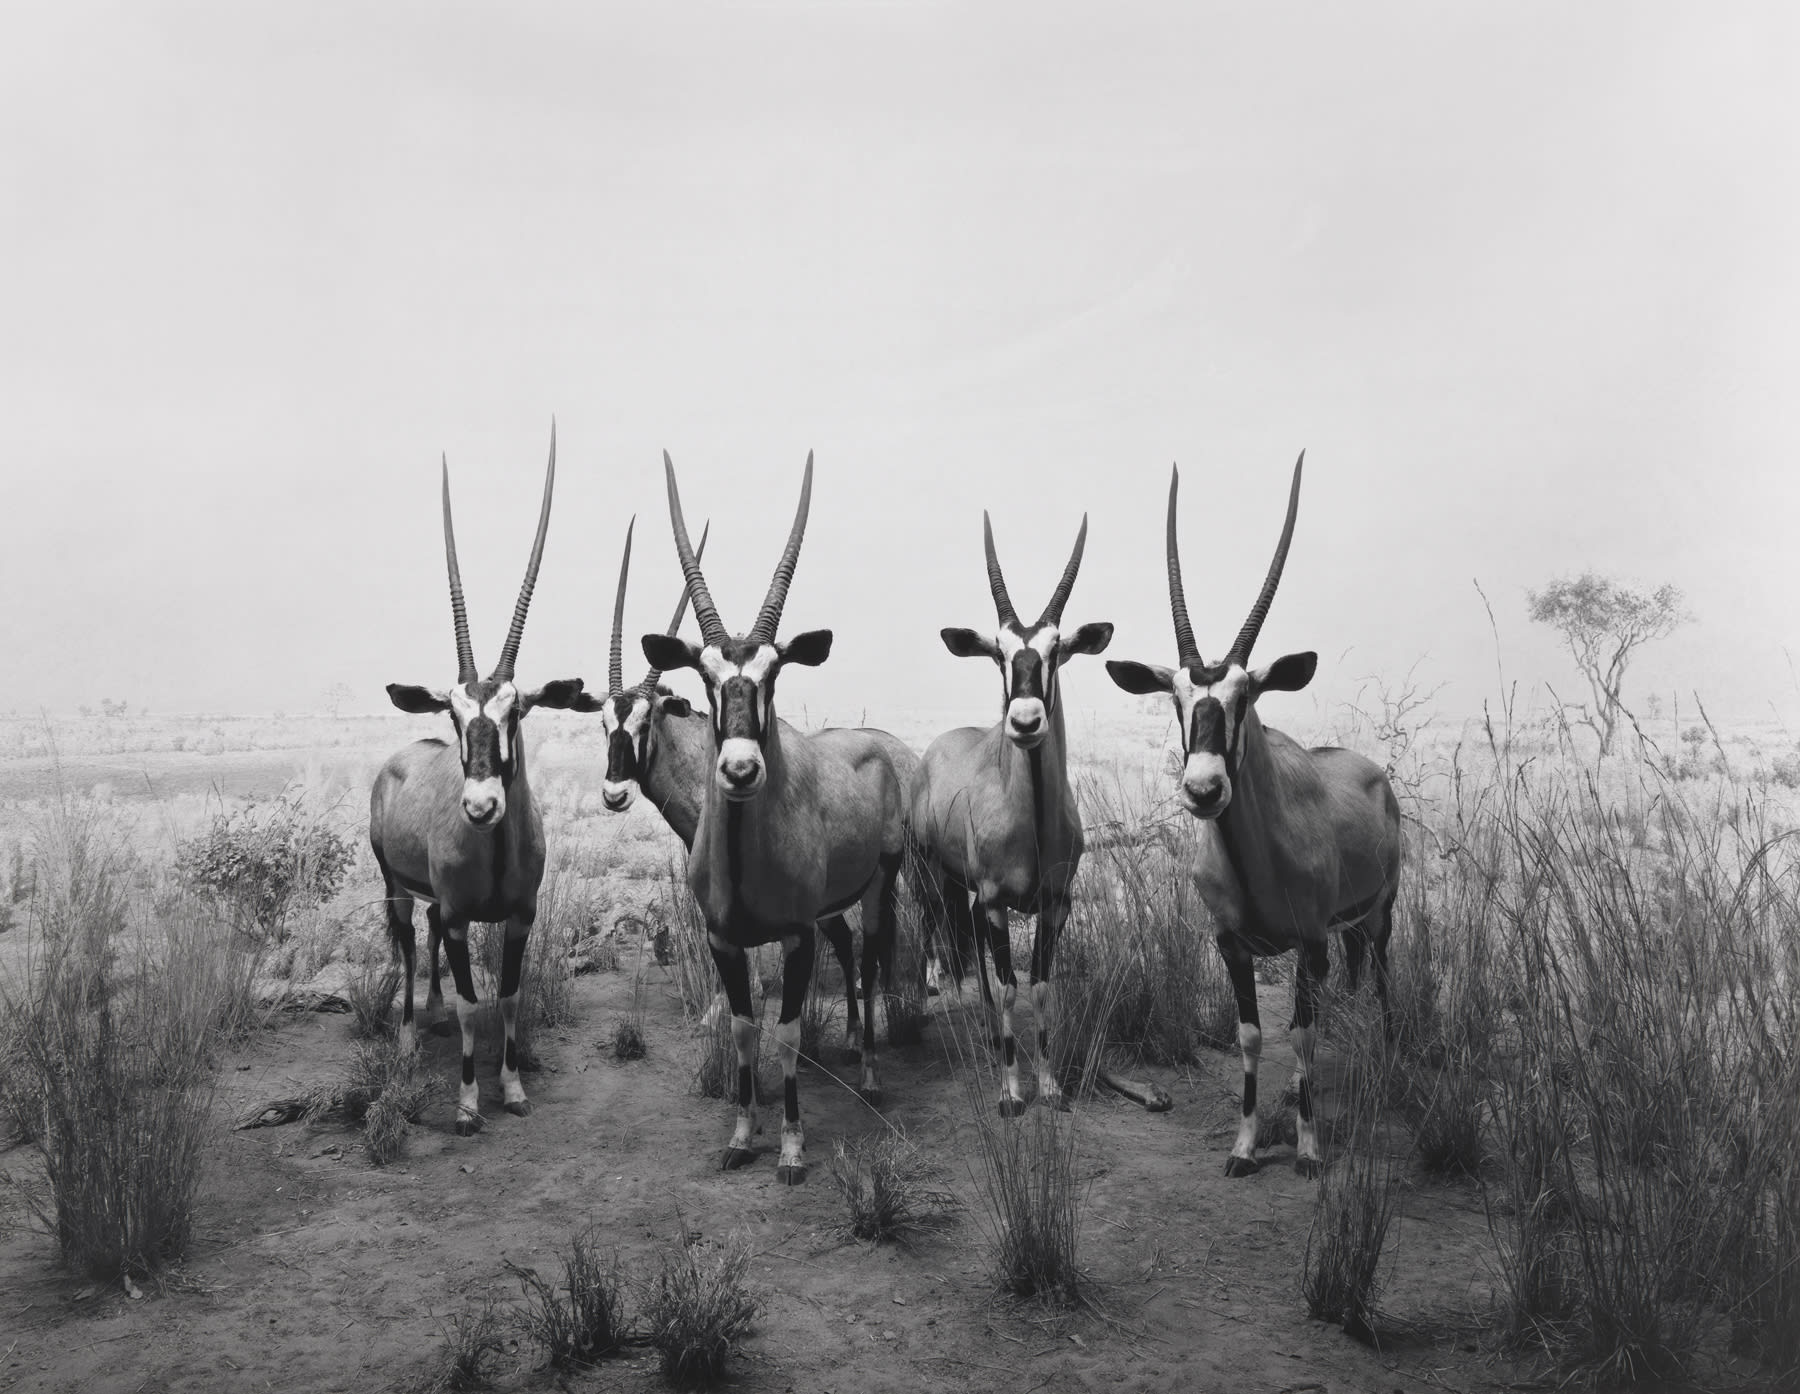 5 taxidermy gazelle stand in a life-size diorama of a grassy plain.